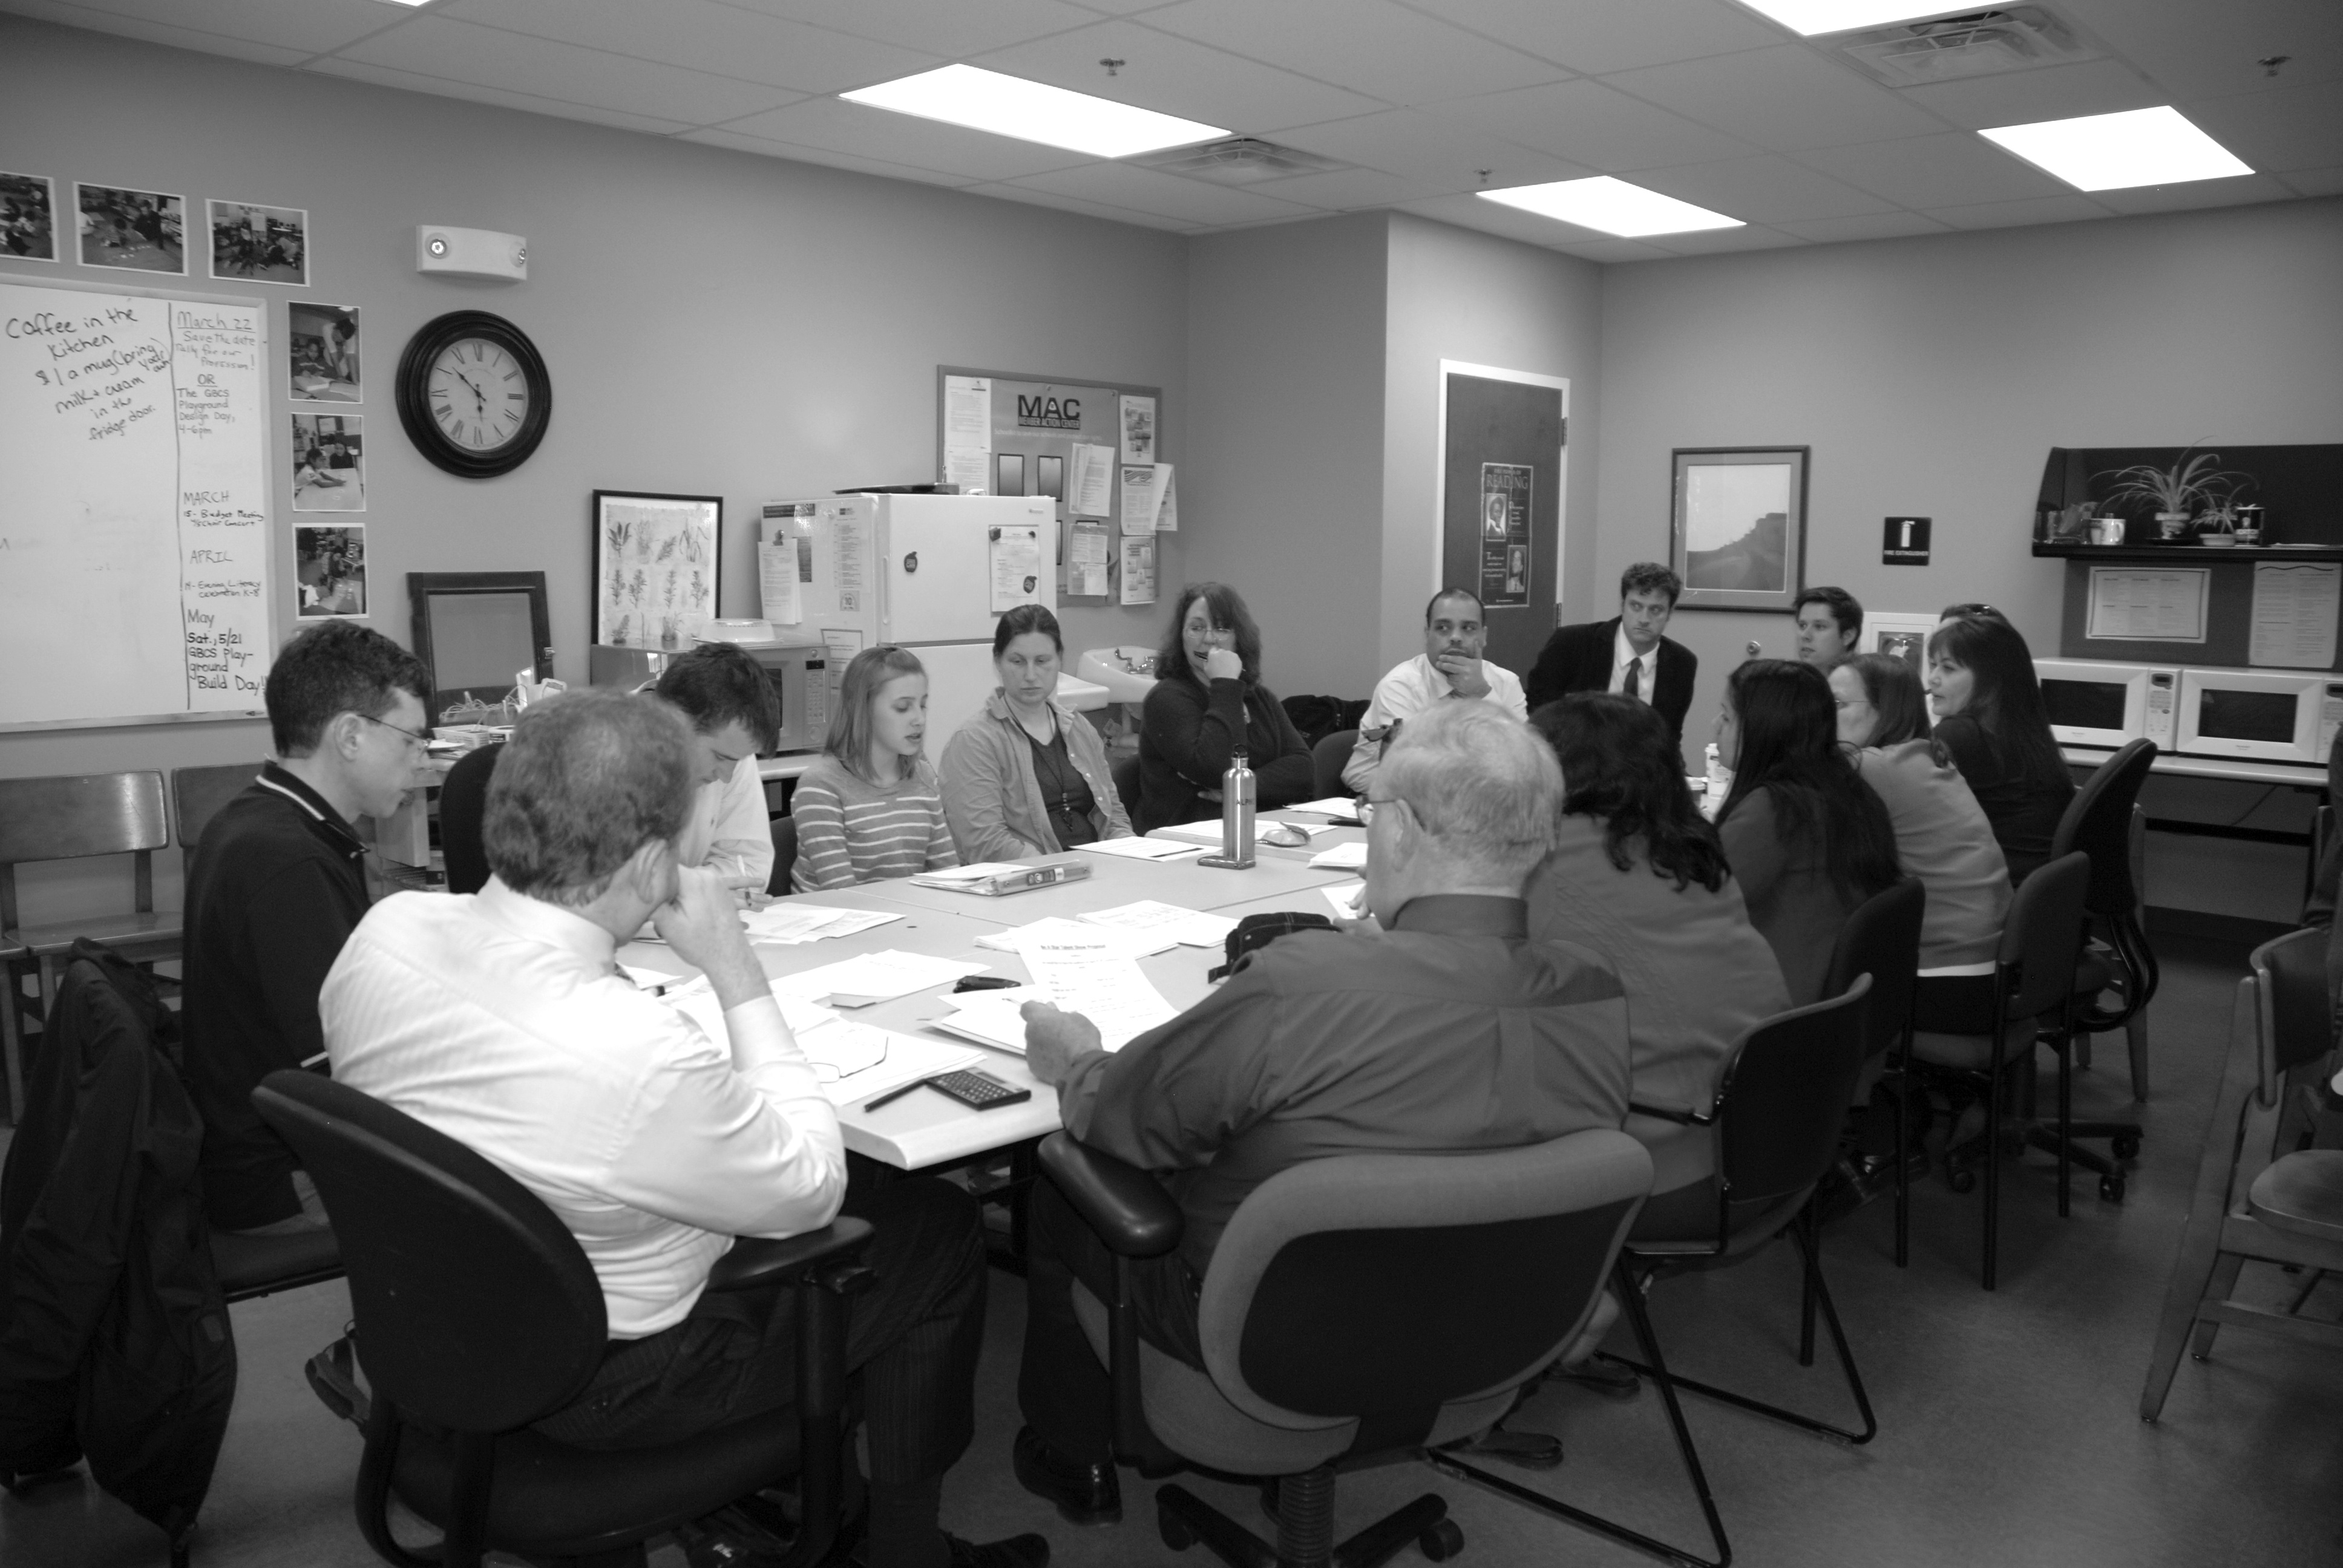 A black and white photo of adults around a table discussing something